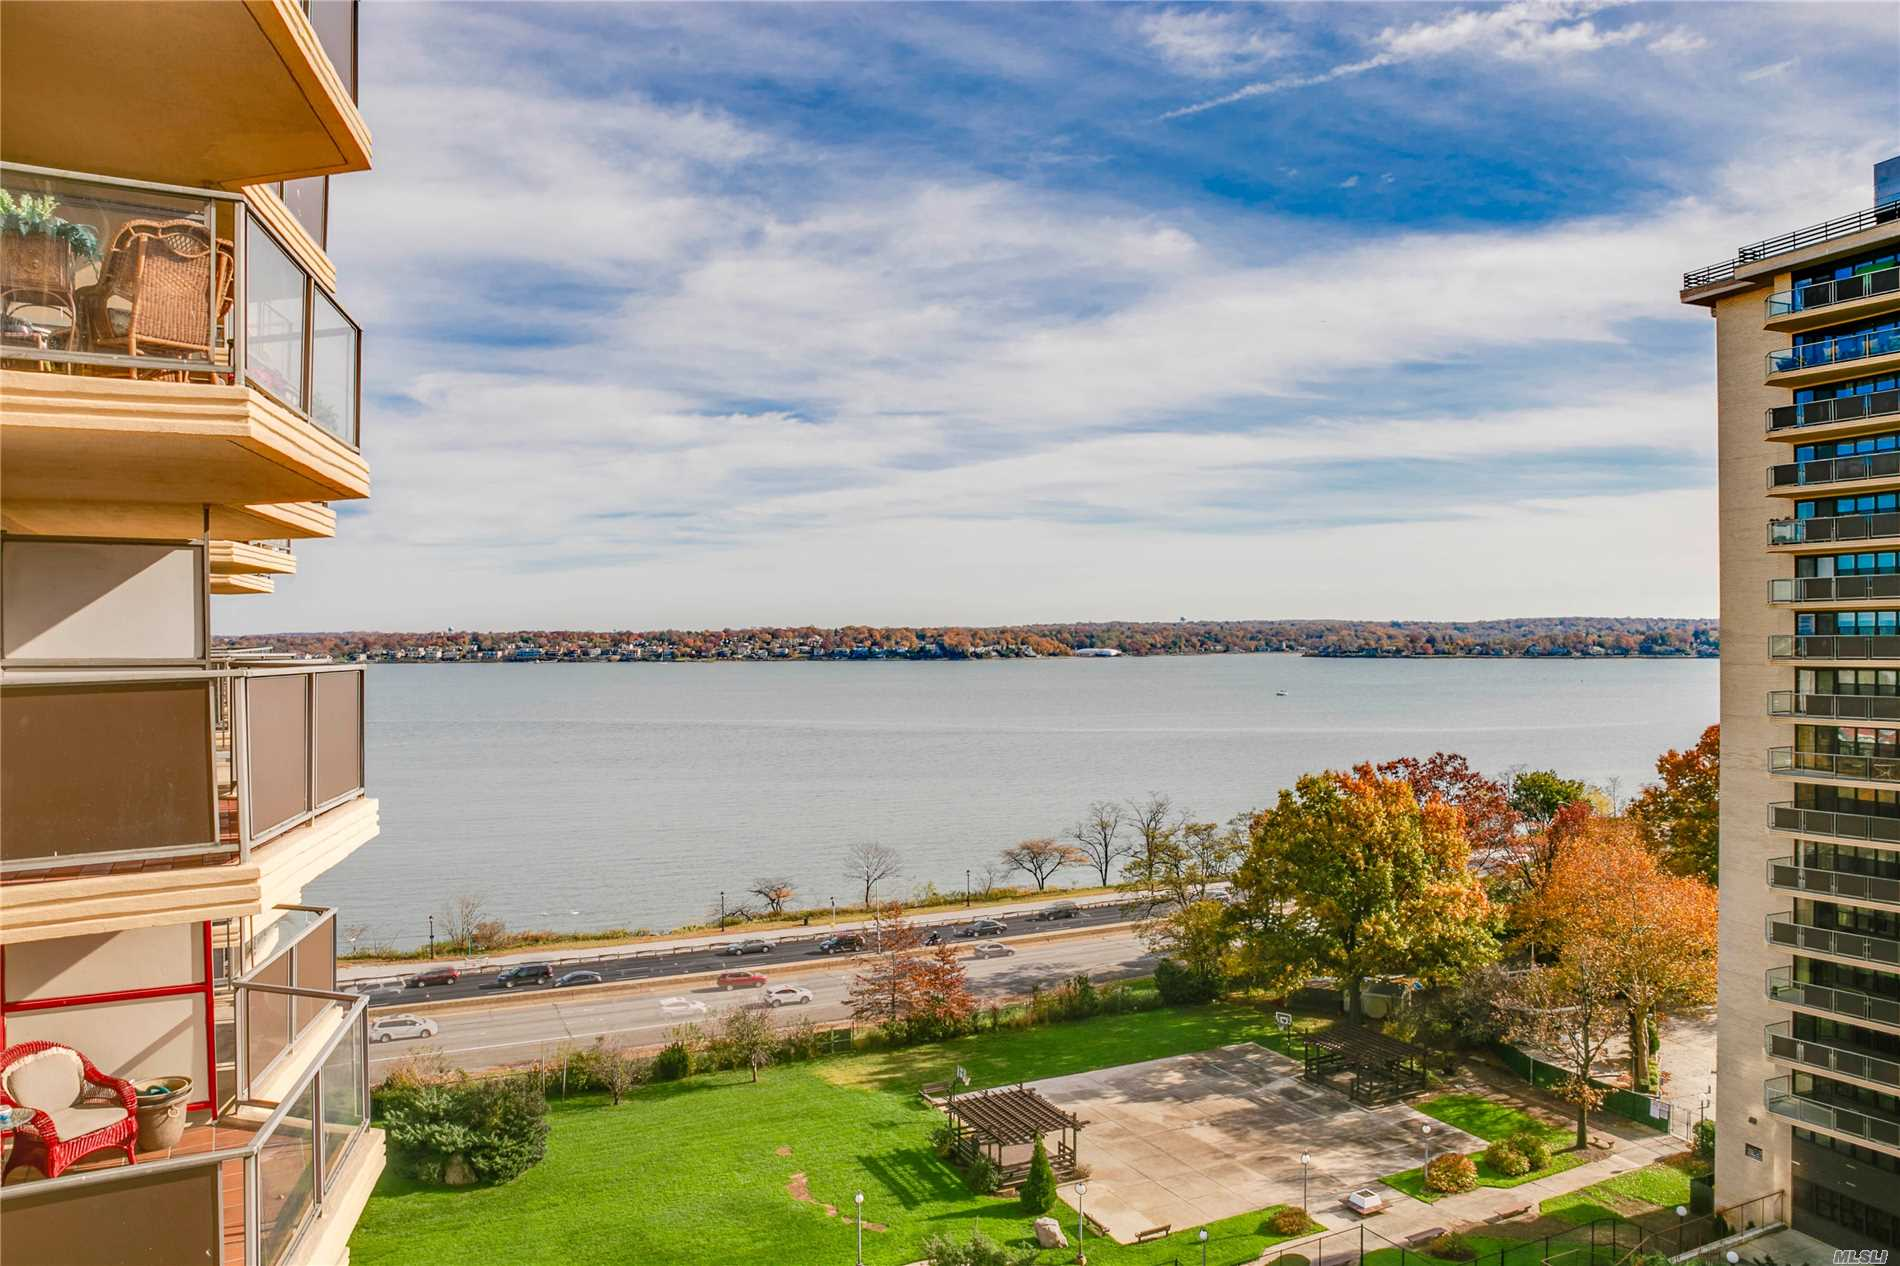 Bayside Water View 2 Bedroom 2 Bath Located In The Desirable Dog Friendly Americana At The Towers At Water's Edge. Enjoy The Morning Sunrise From Your Private Balcony With Southeast Views Of Little Neck Bay. Opportunity To Customize To Your Design Style. Base Maintenance $1, 299.53 + Electricity $120.99 + Amerserv $100=$ 1, 520.52. Enjoy The Resort Style Living At The Americana With 24 Hour Doorman, Parking, On-Site Salon, Dry Cleaners, Store, Health Club, Outdoor Heated Pool, & Tennis!